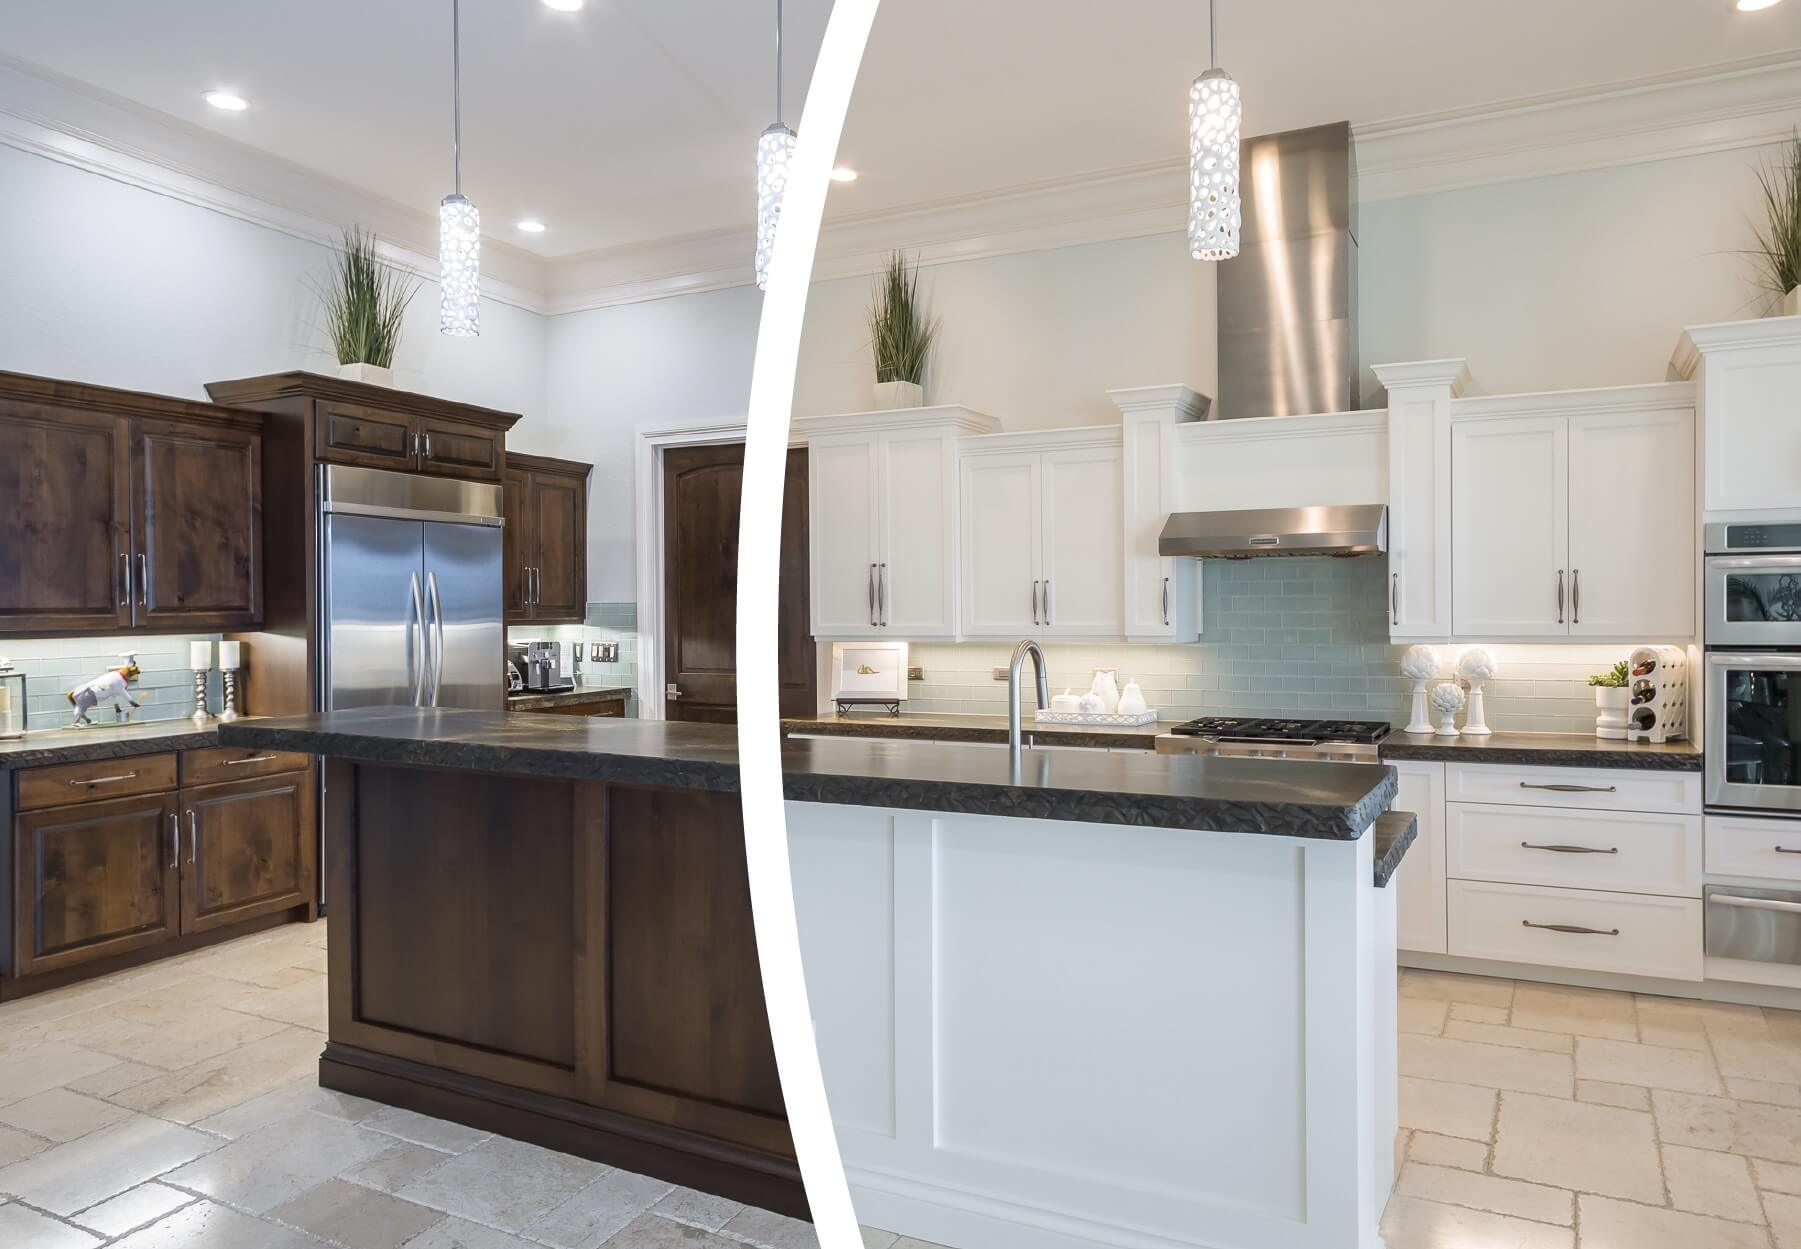 Cabinet Refinishing-Longview TX Professional Painting Contractors-We offer Residential & Commercial Painting, Interior Painting, Exterior Painting, Primer Painting, Industrial Painting, Professional Painters, Institutional Painters, and more.